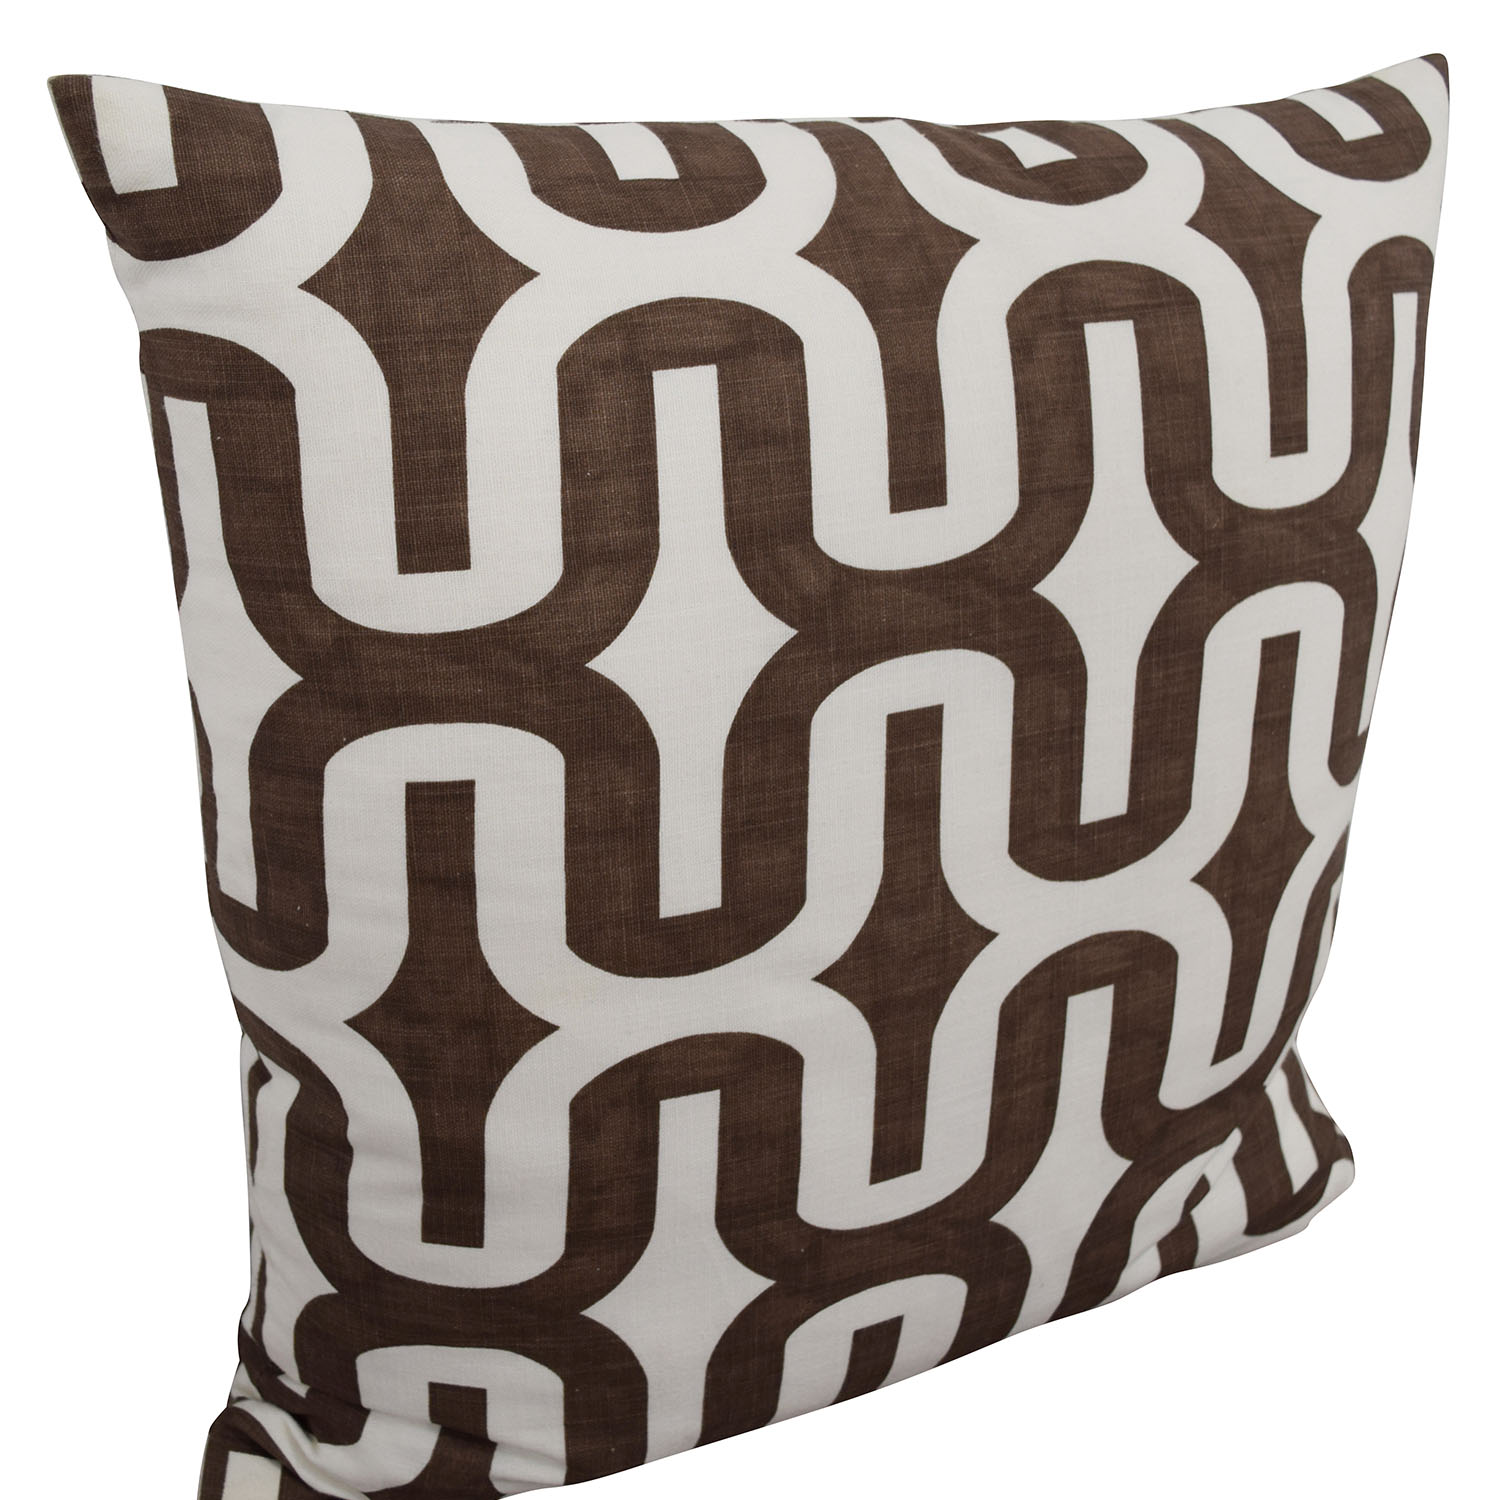 buy Brown and White Decorative Toss Pillows Sofas